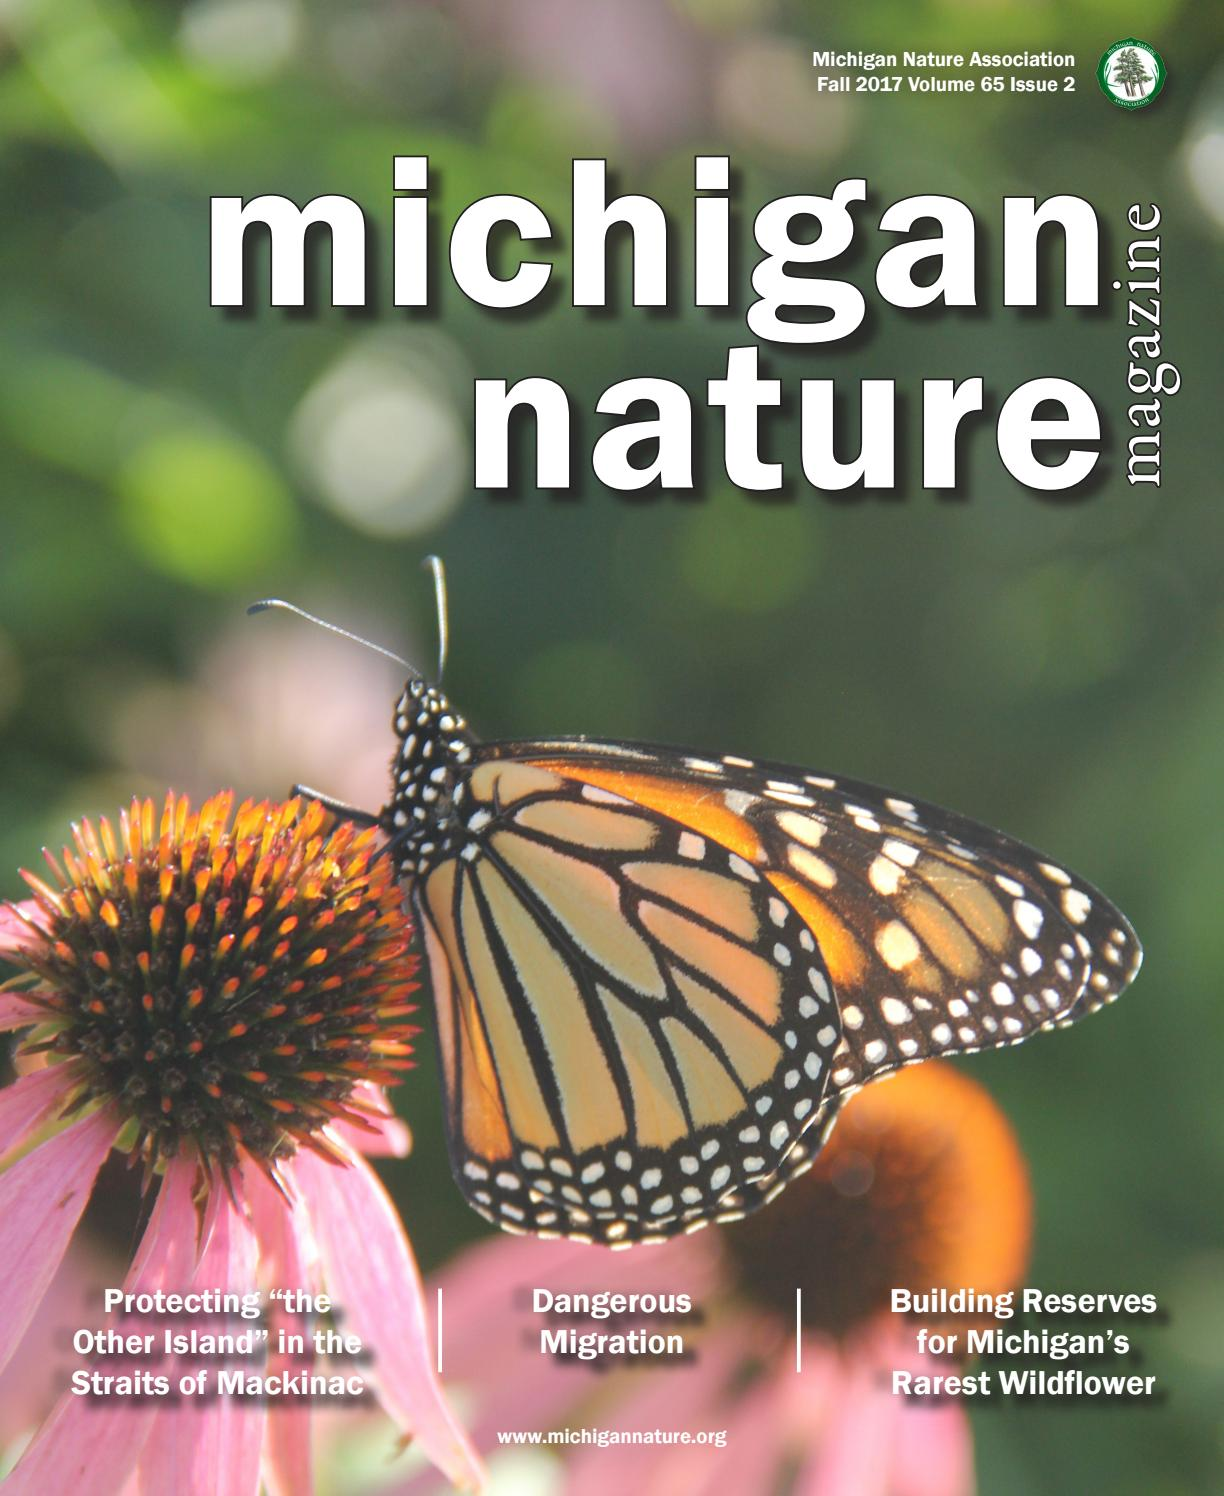 Curtis warnes butterfly chairs michigan artists gallery - Michigan Nature Magazine Fall 2017 By Michigan Nature Association Issuu